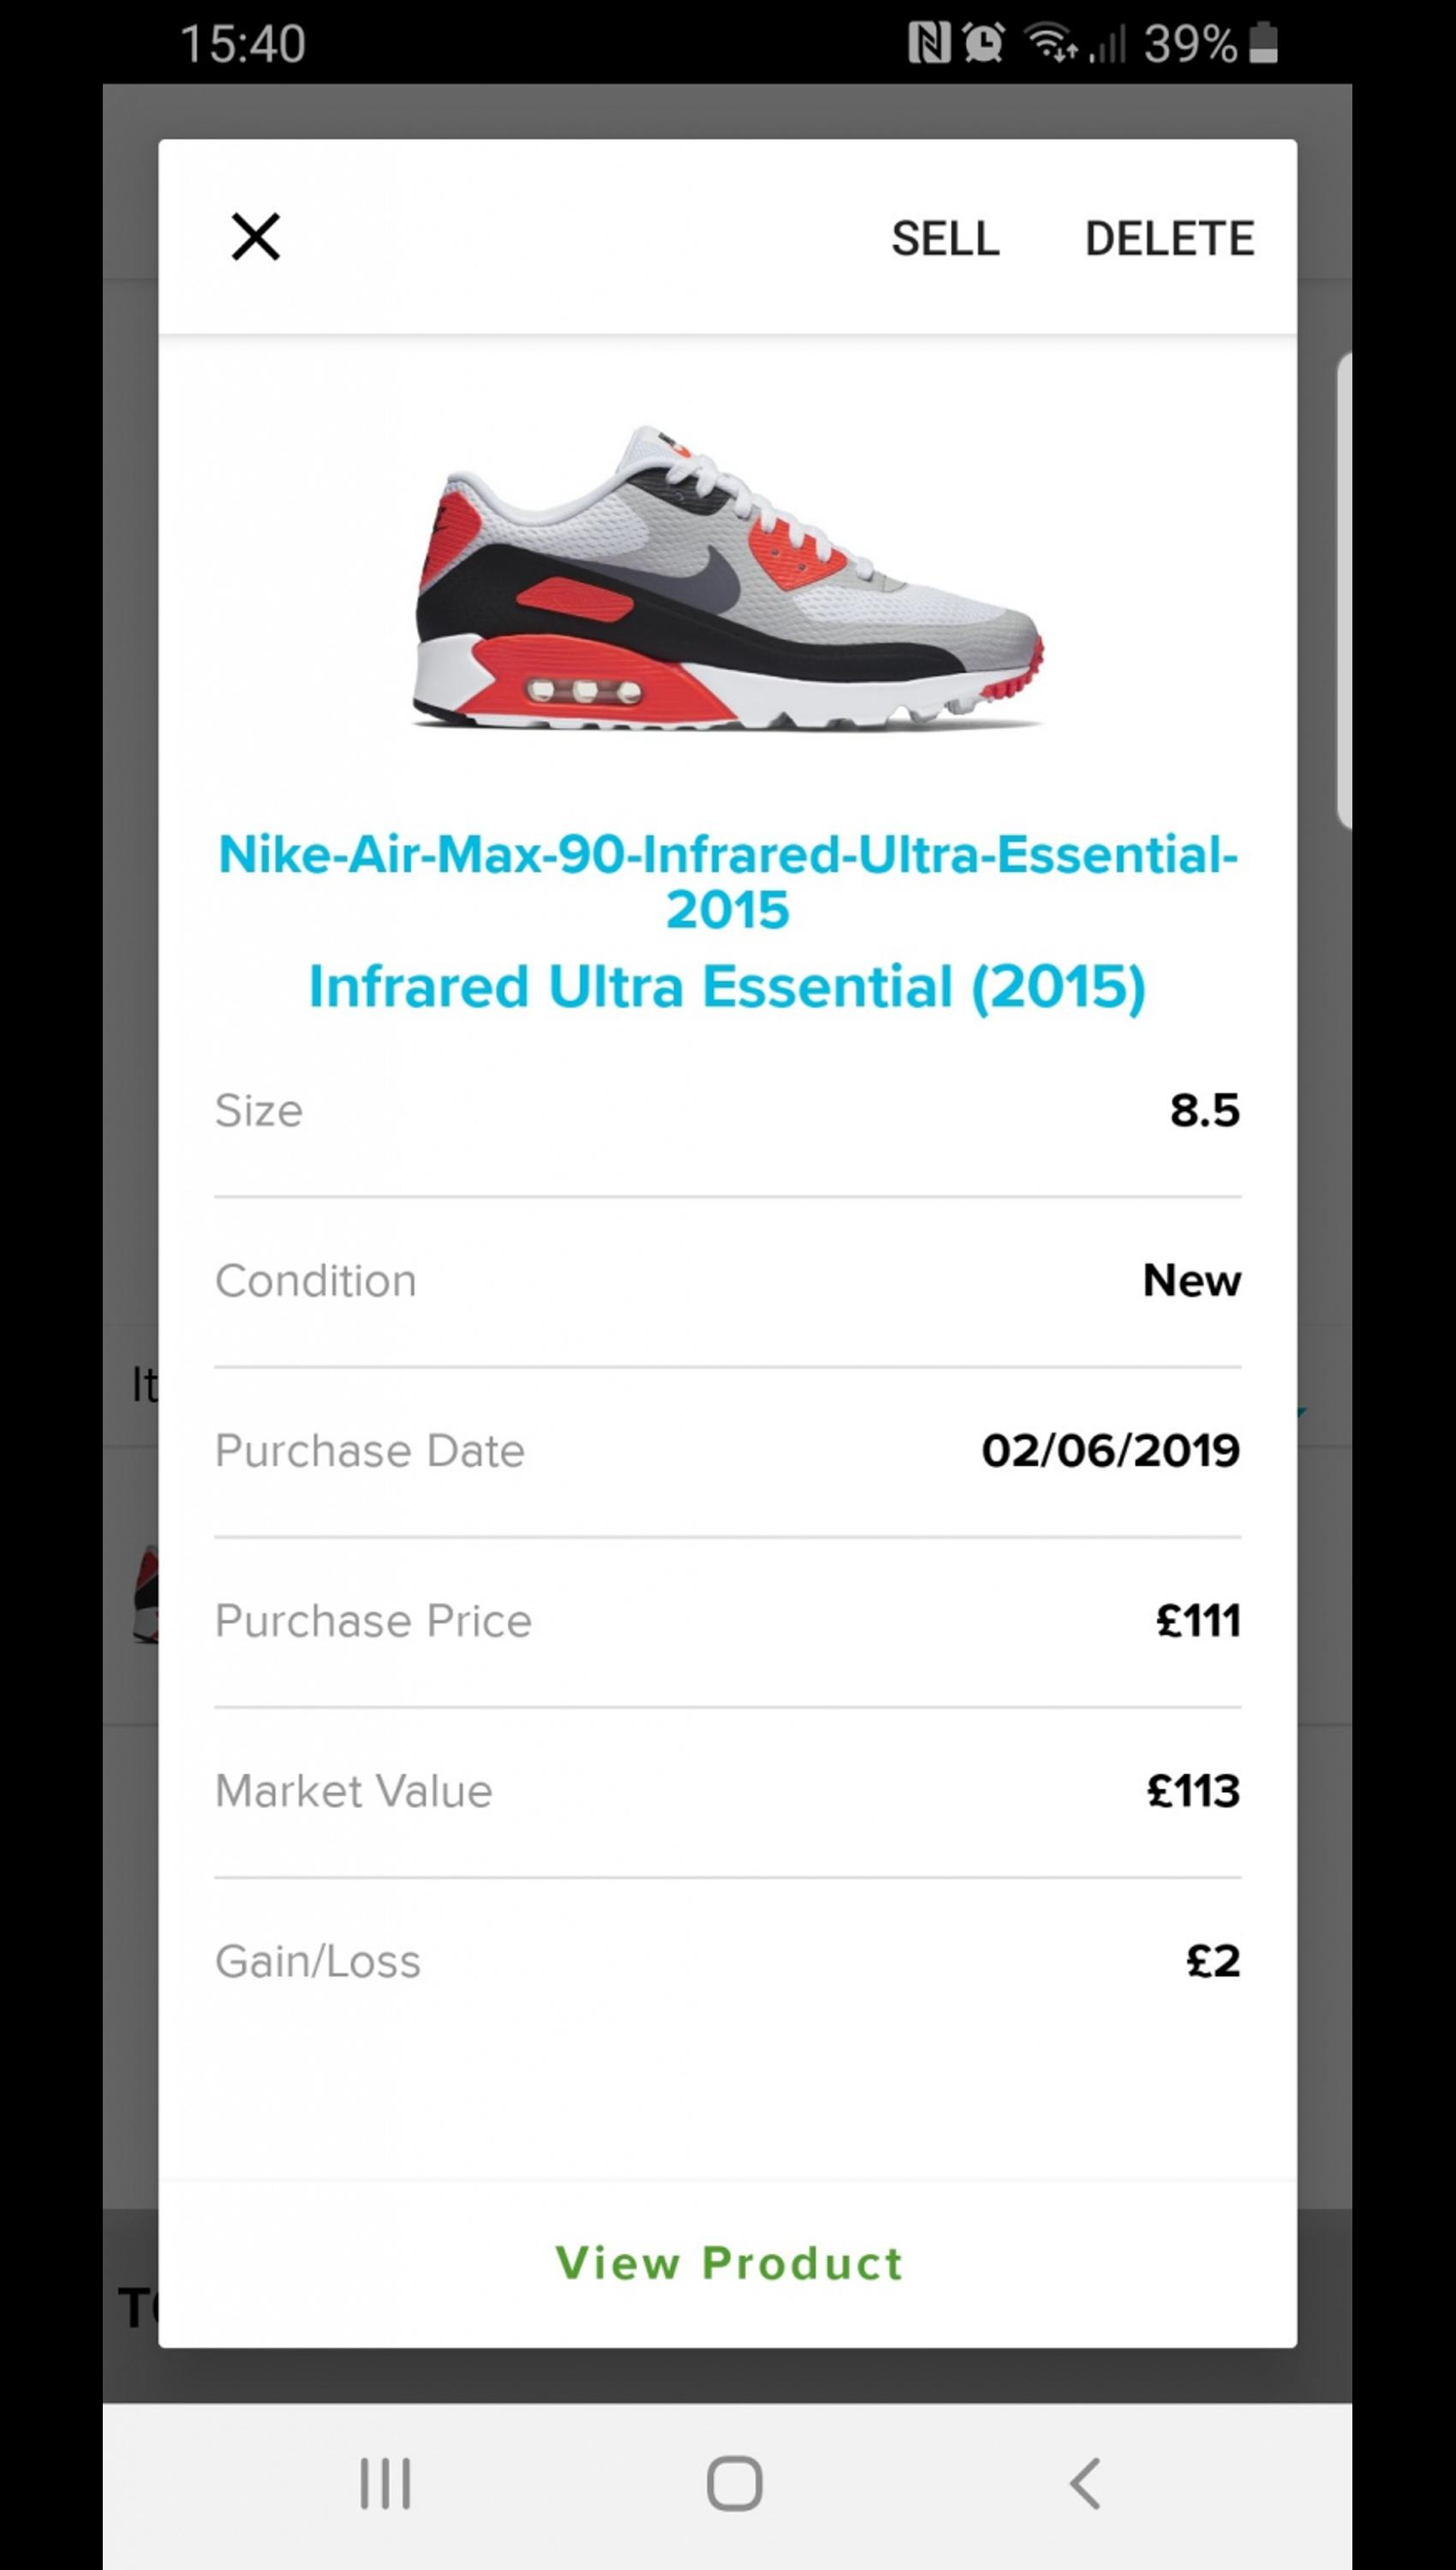 nike air max 90 ultra infrared in LS21 Otley for £50.00 for